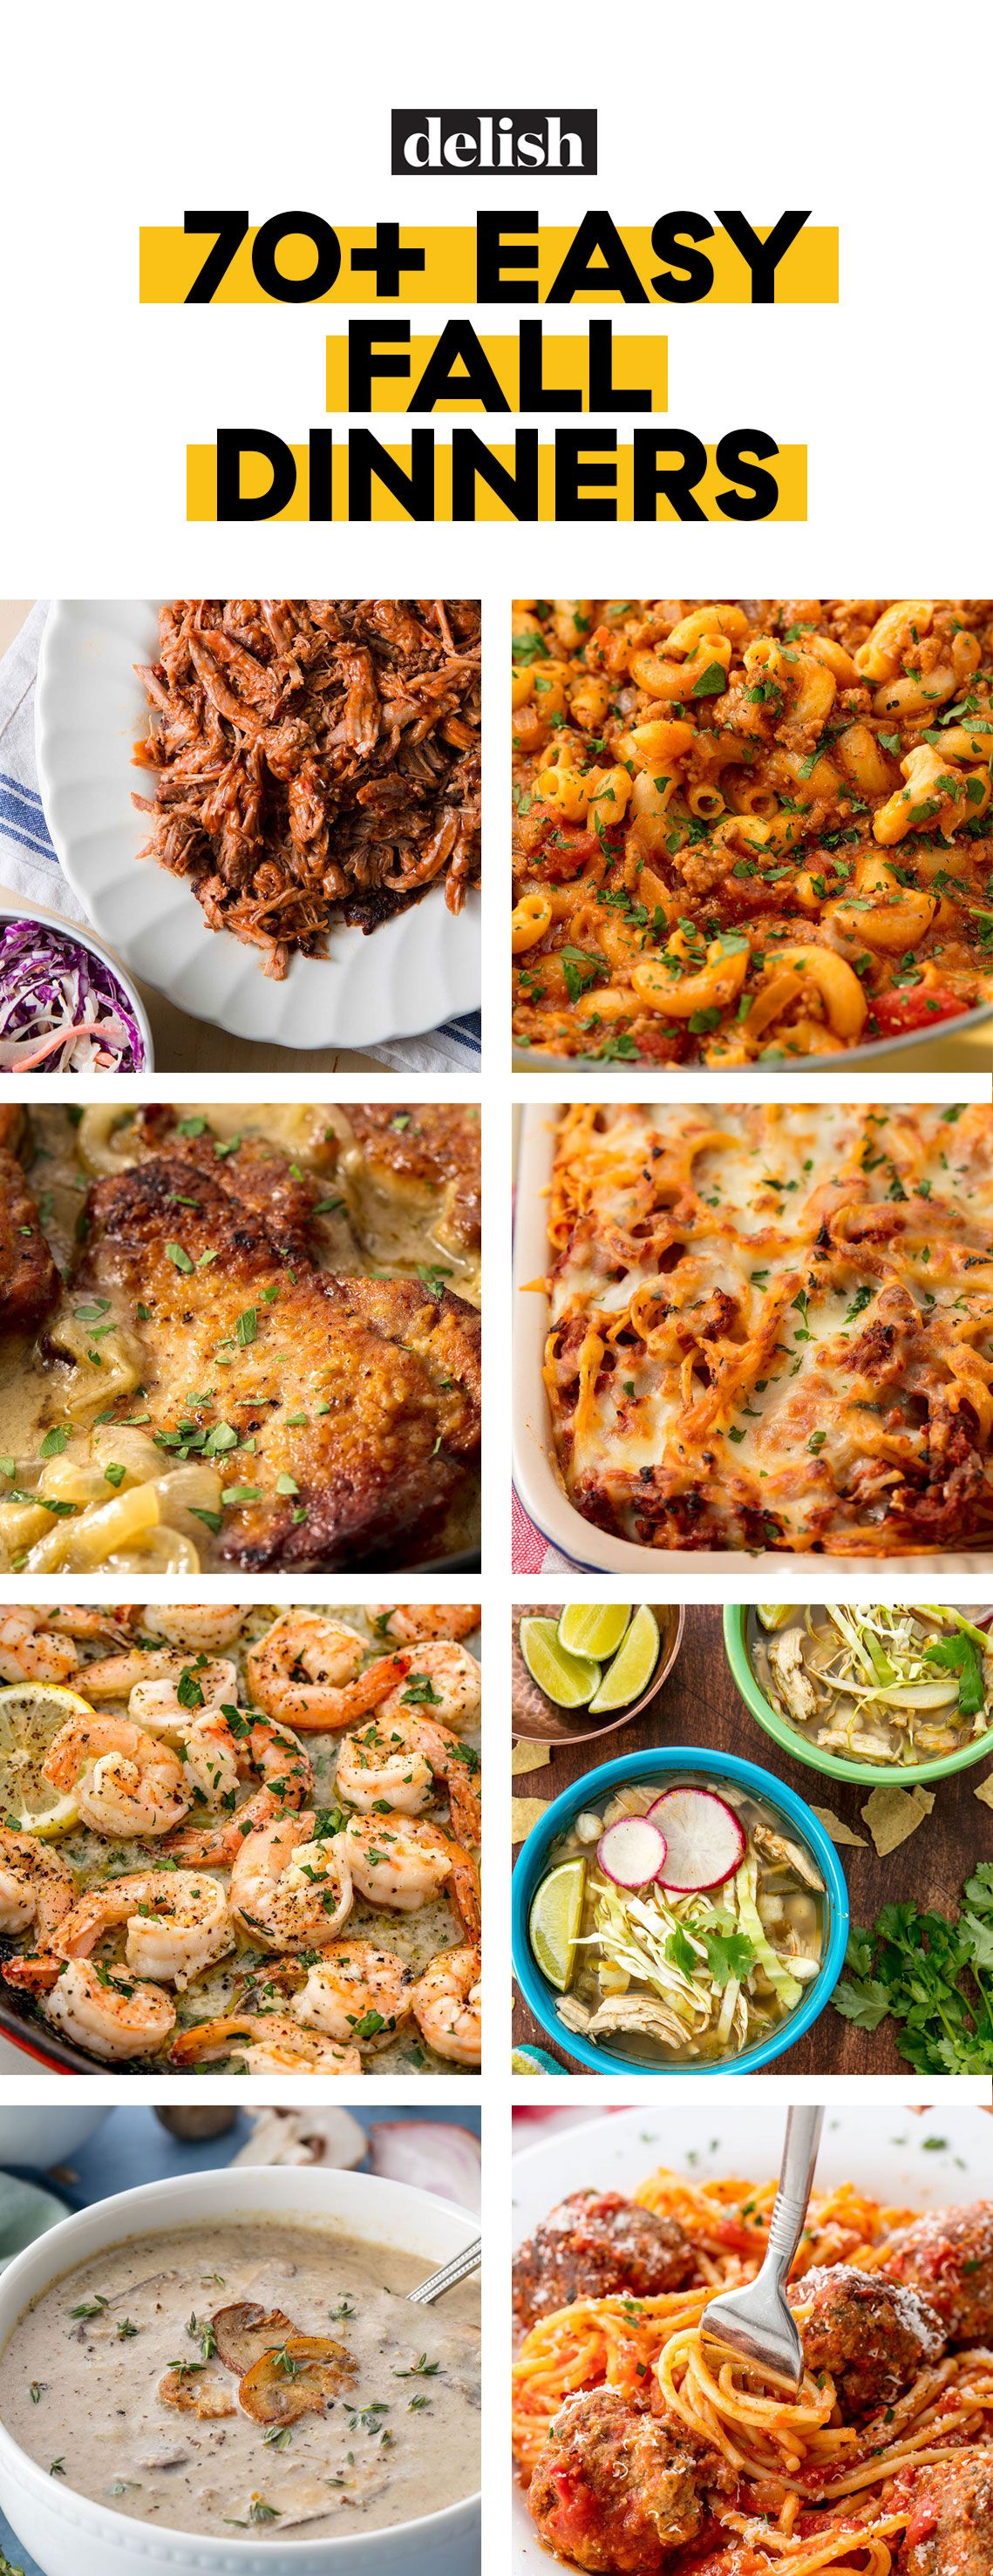 Chicken Posole, Lobster Mac, and More Comfort Food Recipes images